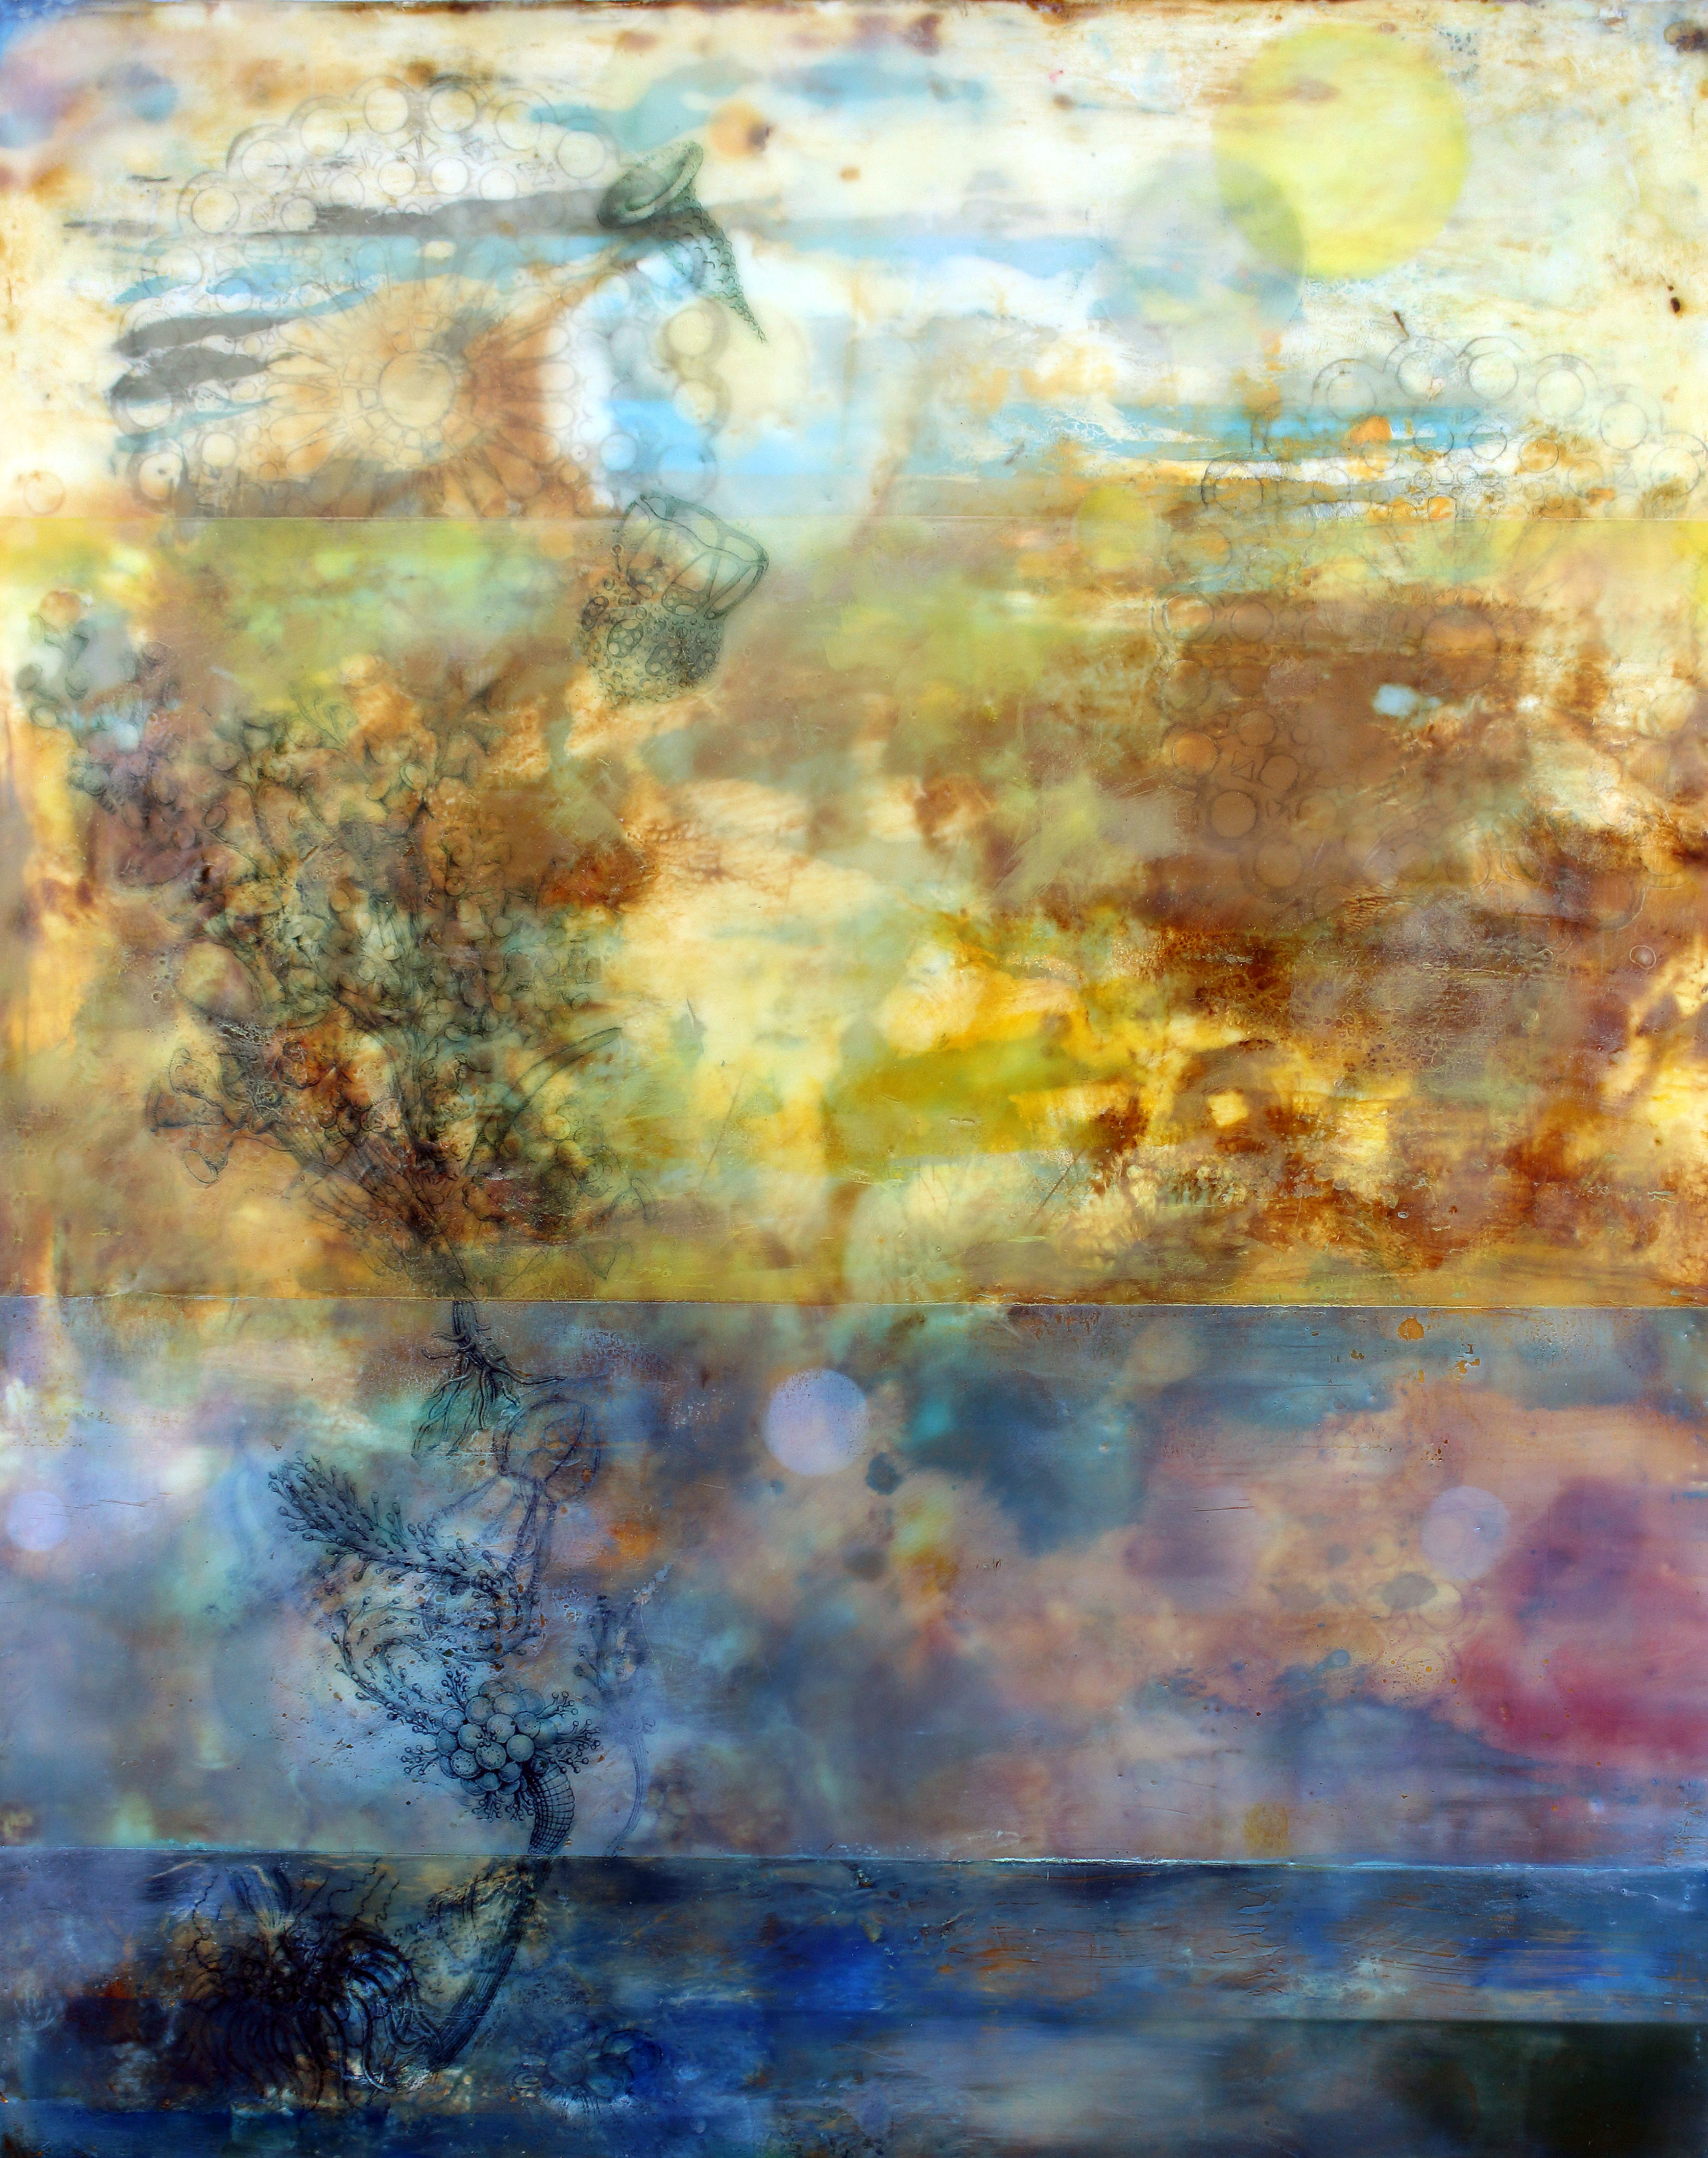 "View Image Details FULL MOON 2014 Oil paint, powdered pigments, inks and encaustic on birch panel, 20"" x 17"" x 2.5"""